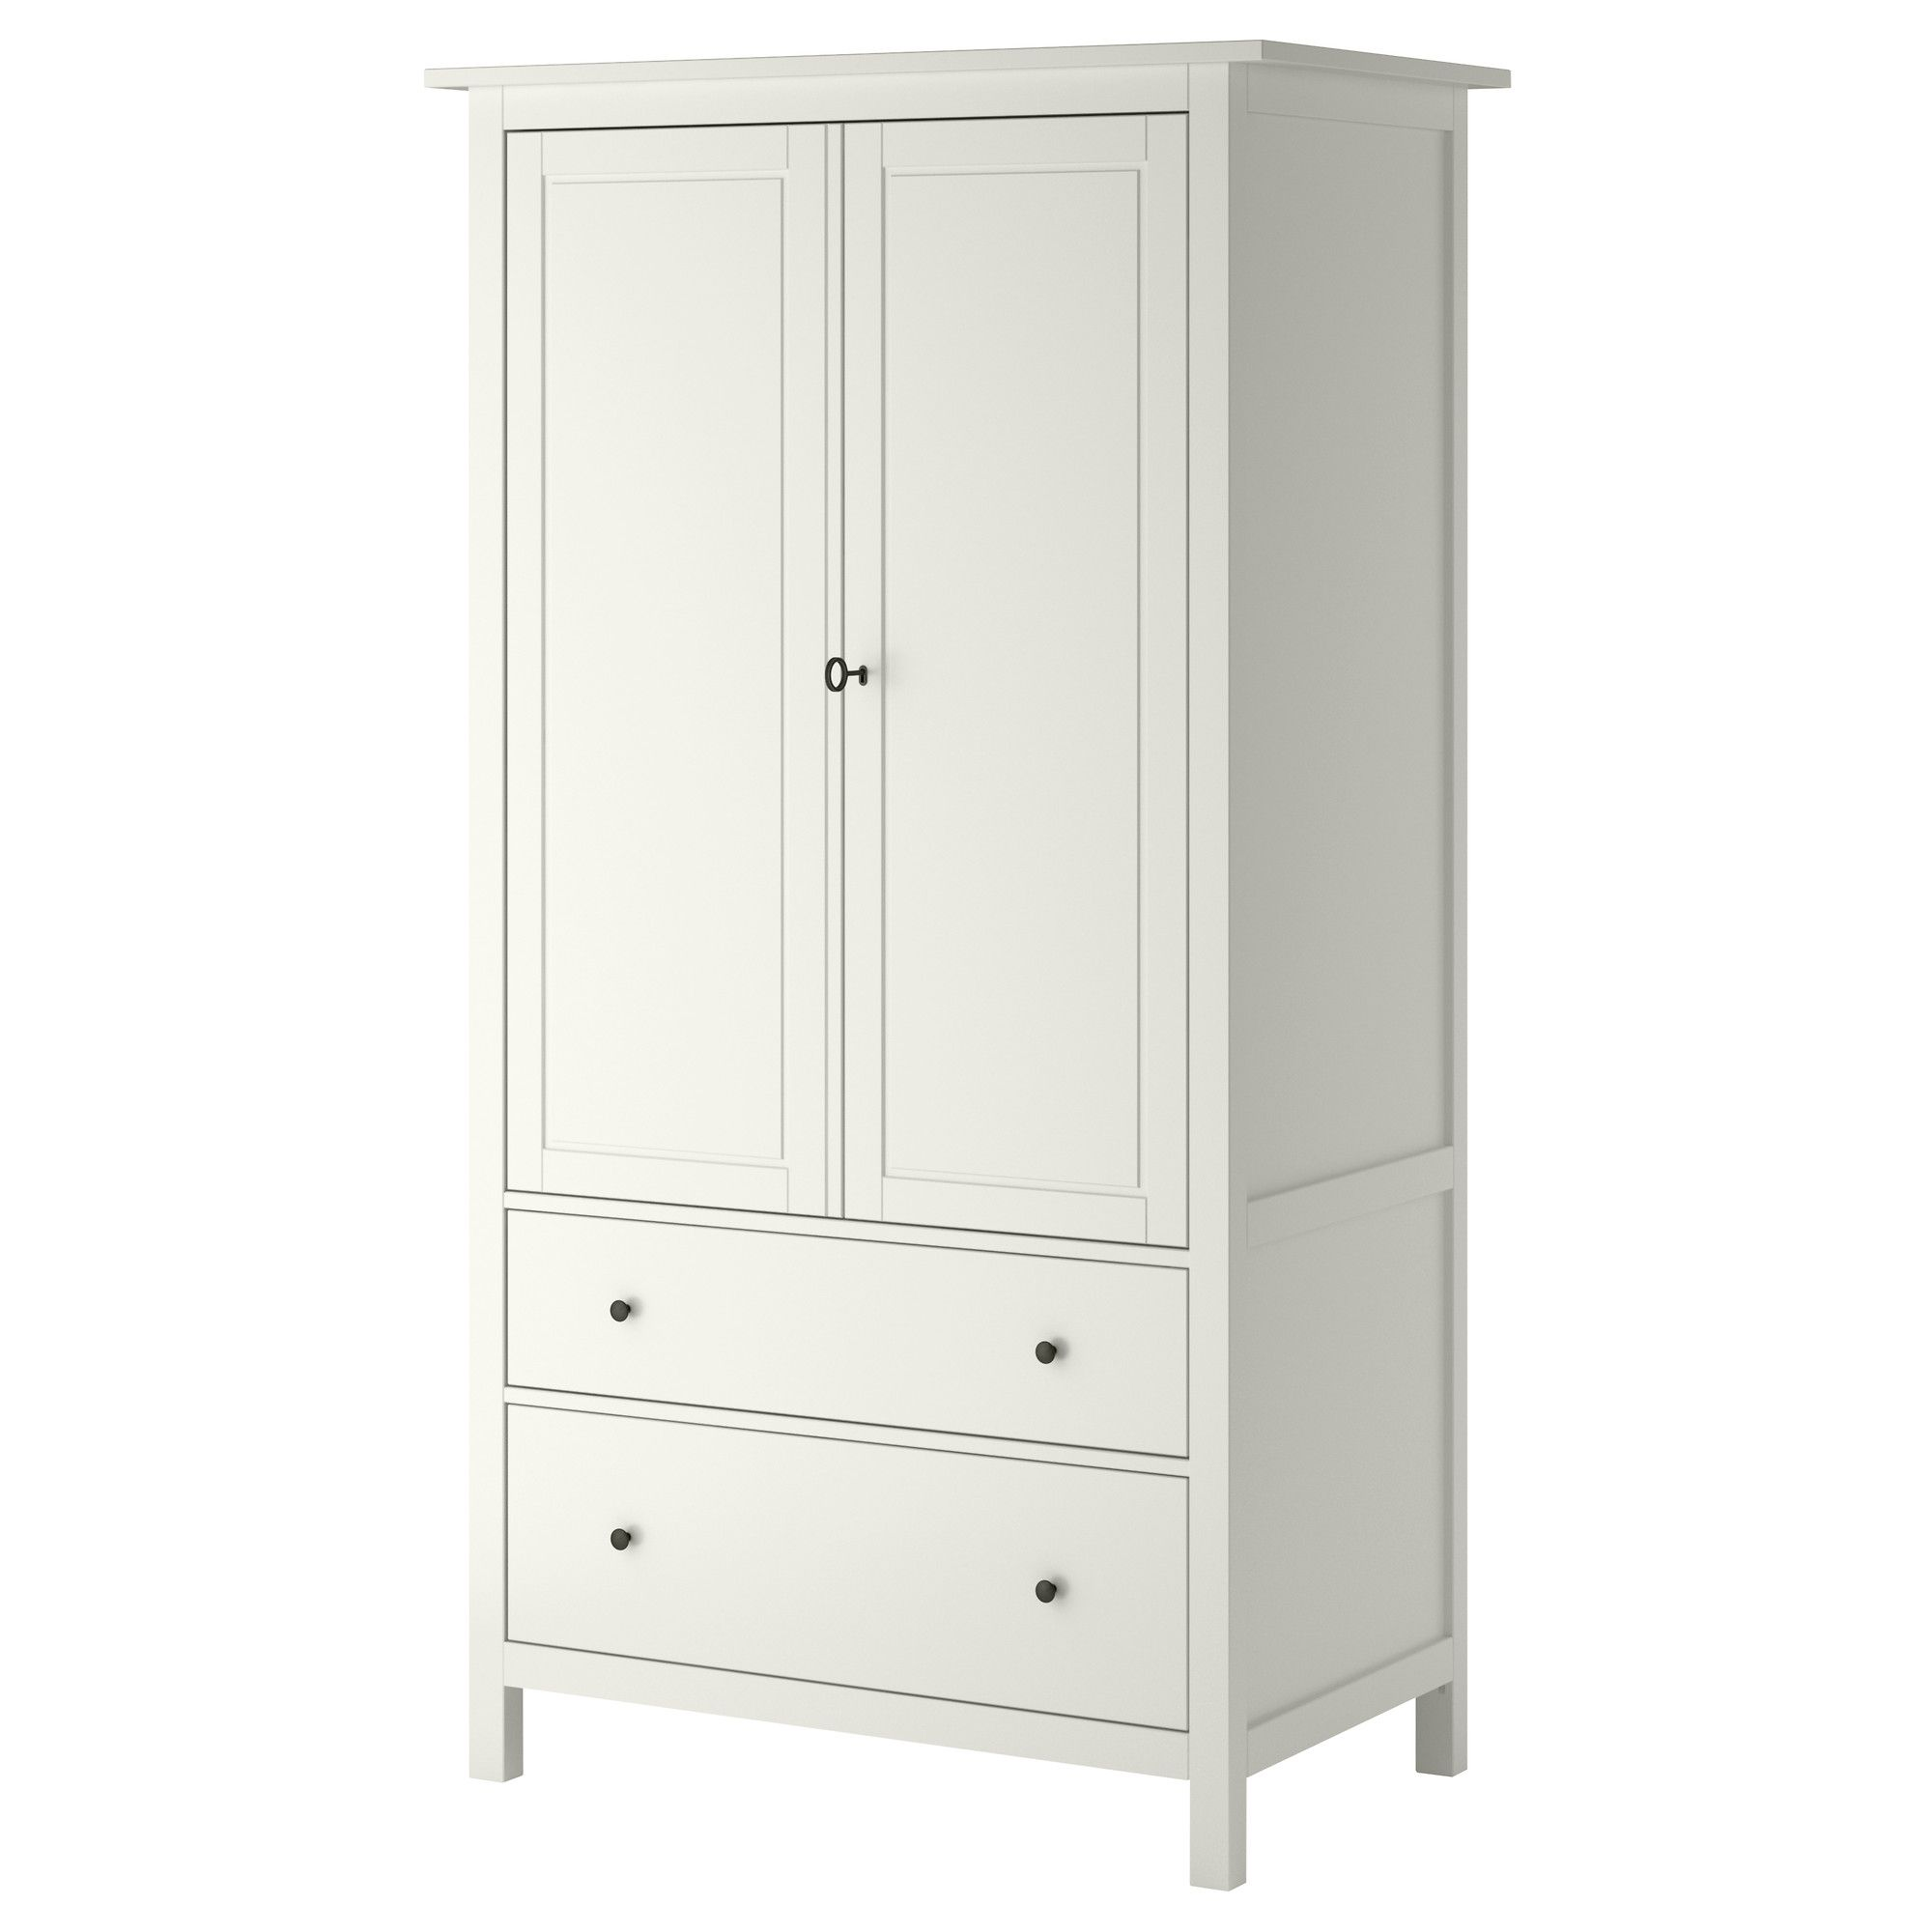 Kleiderschrank ikea hemnes  HEMNES white wardrobe with four adjustable shelves and two clothes ...